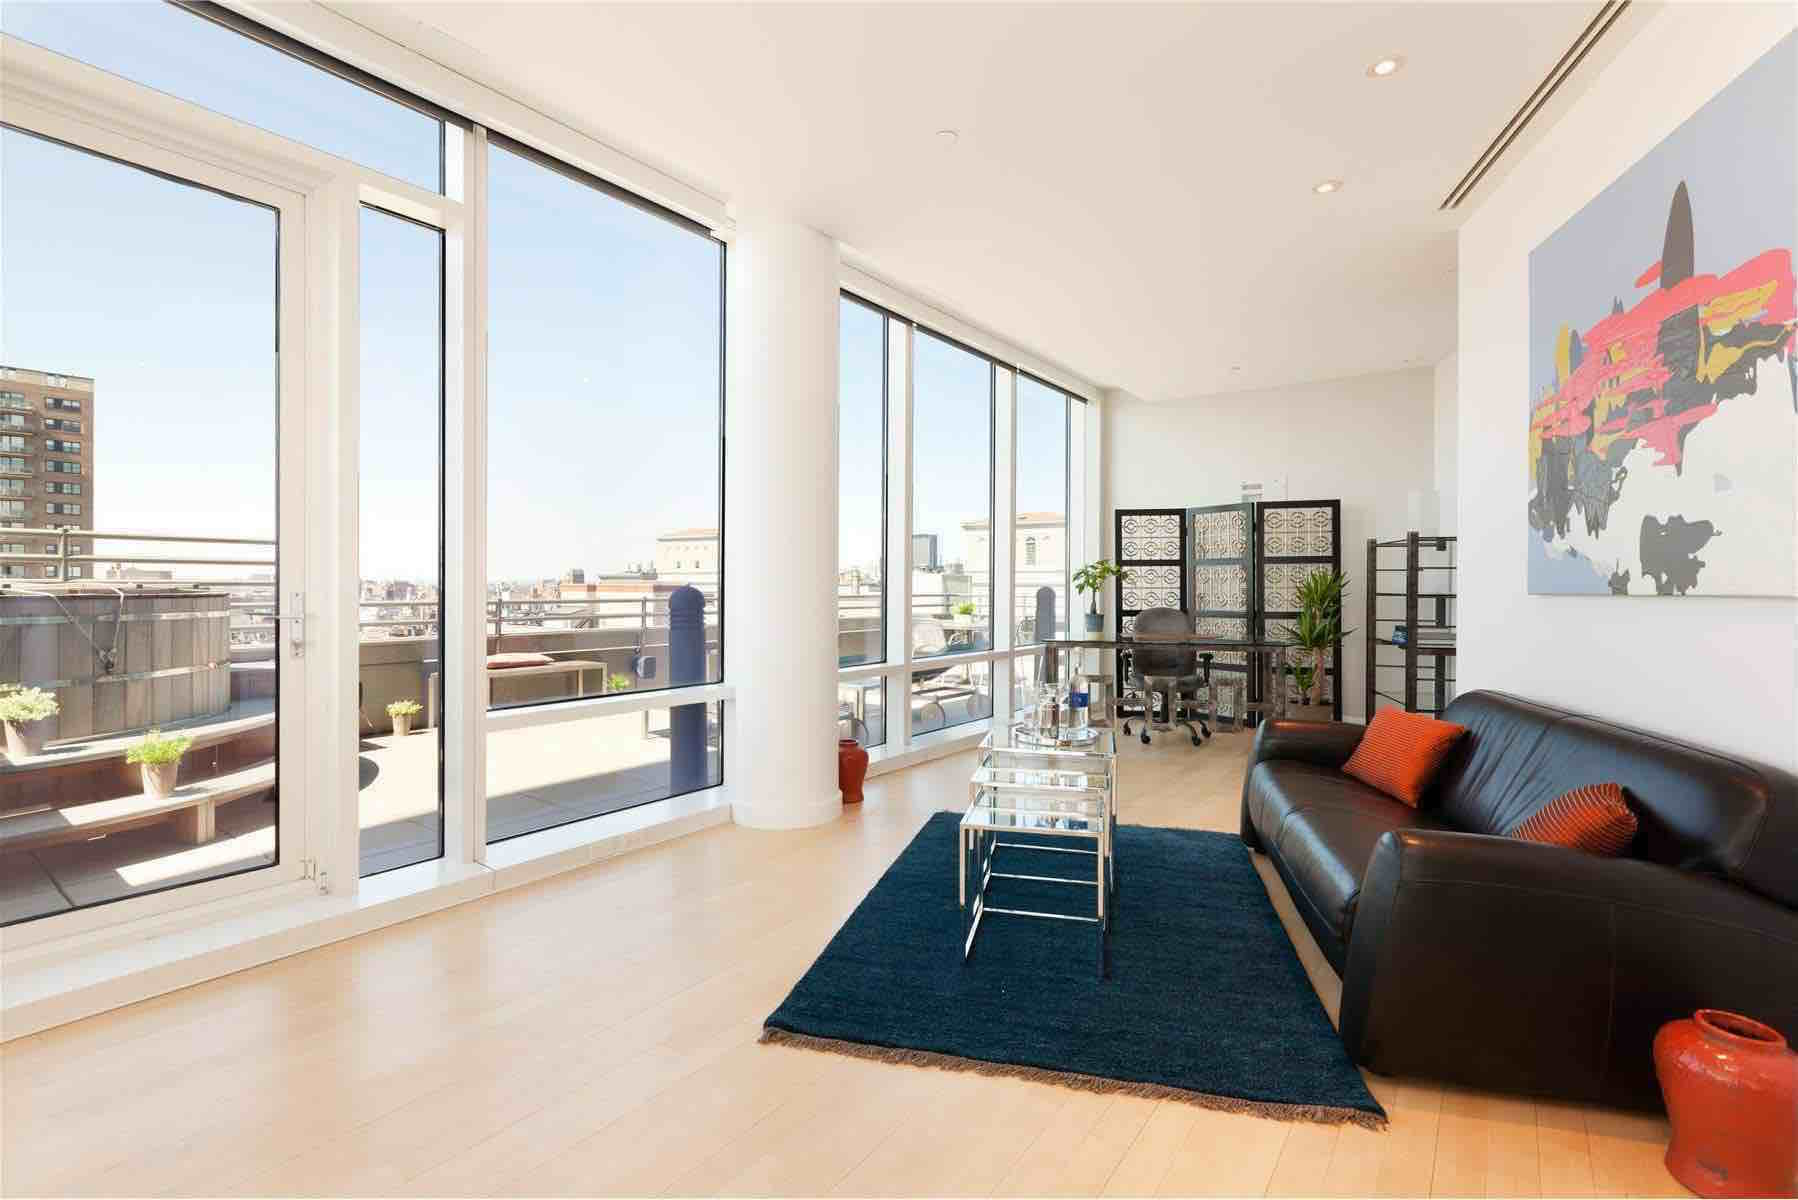 Duplex Penthouse In Astor Place Tower By Charles Gwathmey